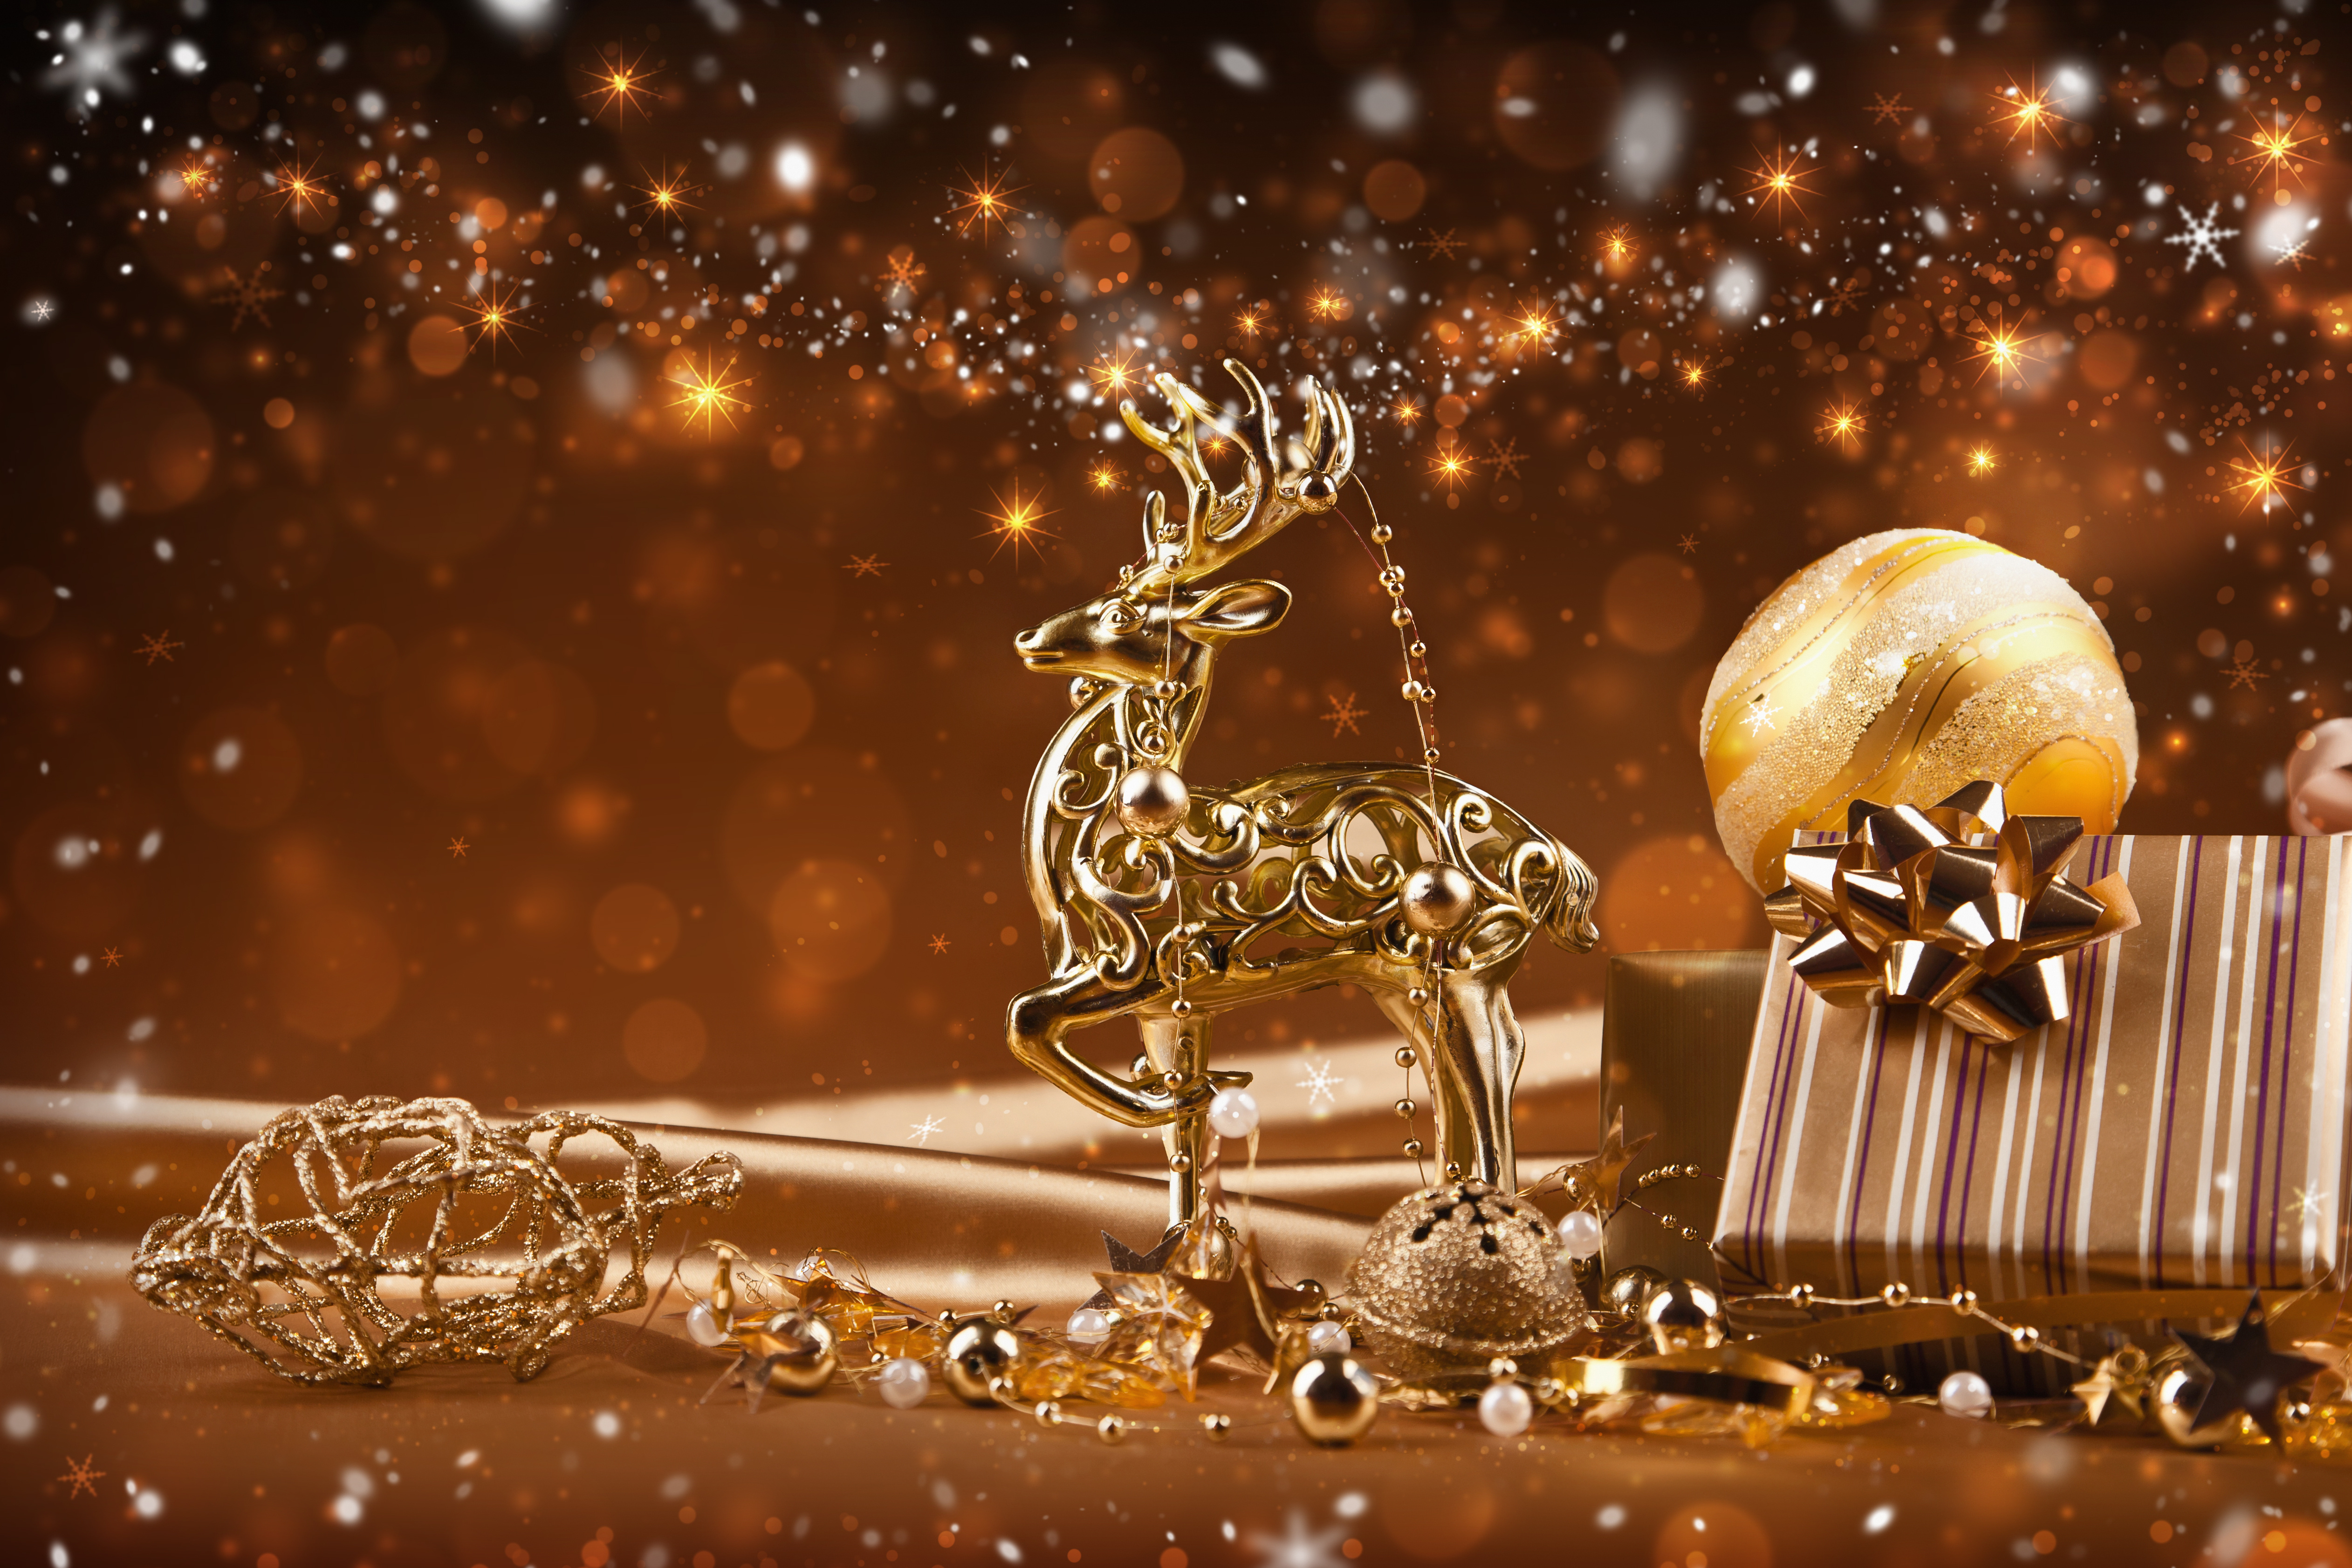 Reindeer new year ornaments golden christmas lights for Christmas lights and decorations